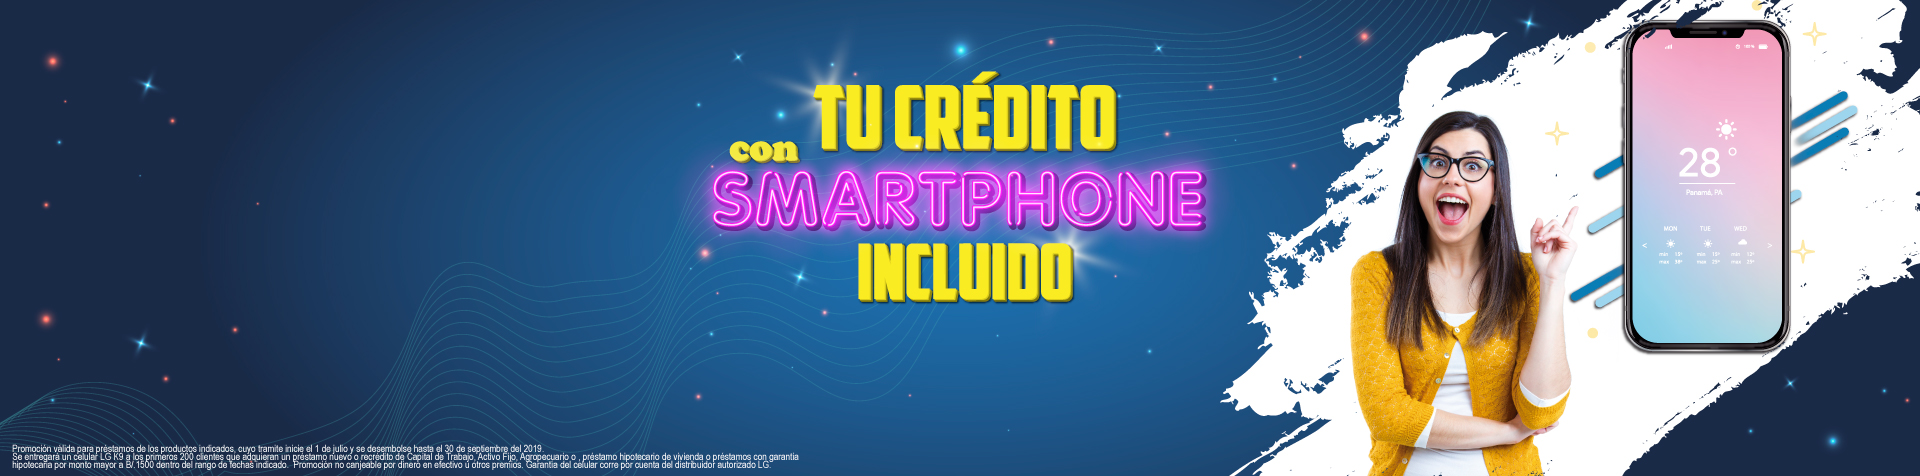 images/headers/mobile/Banner Web Celulares 2